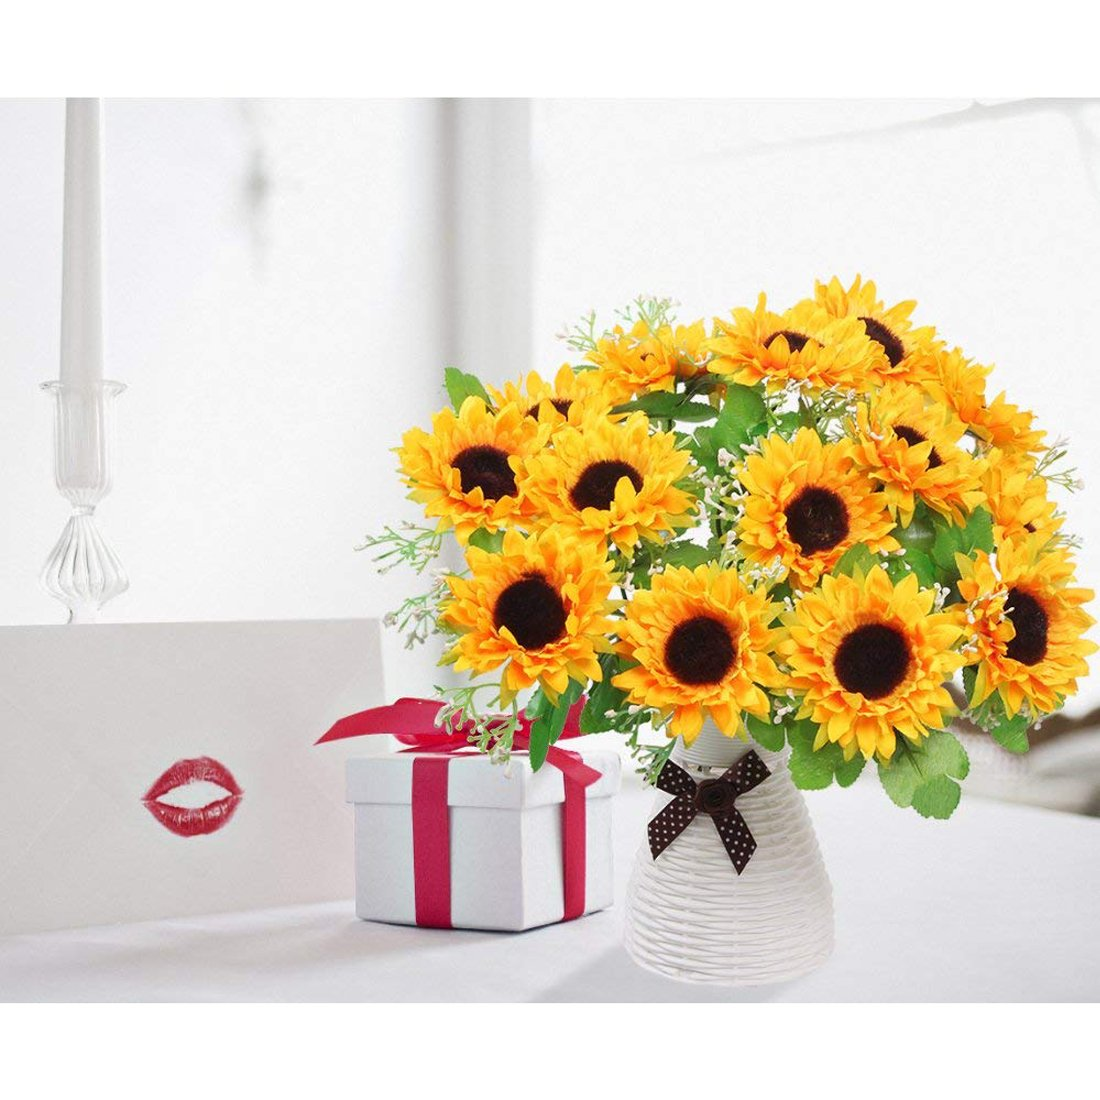 NDakter Artificial Sunflowers, 4 Bundles 7 Head Artificial Flowers Silk Sunflowers Plastic Plants Indoor Outdoor Home Kitchen Office Christmas Wedding Party Decoration